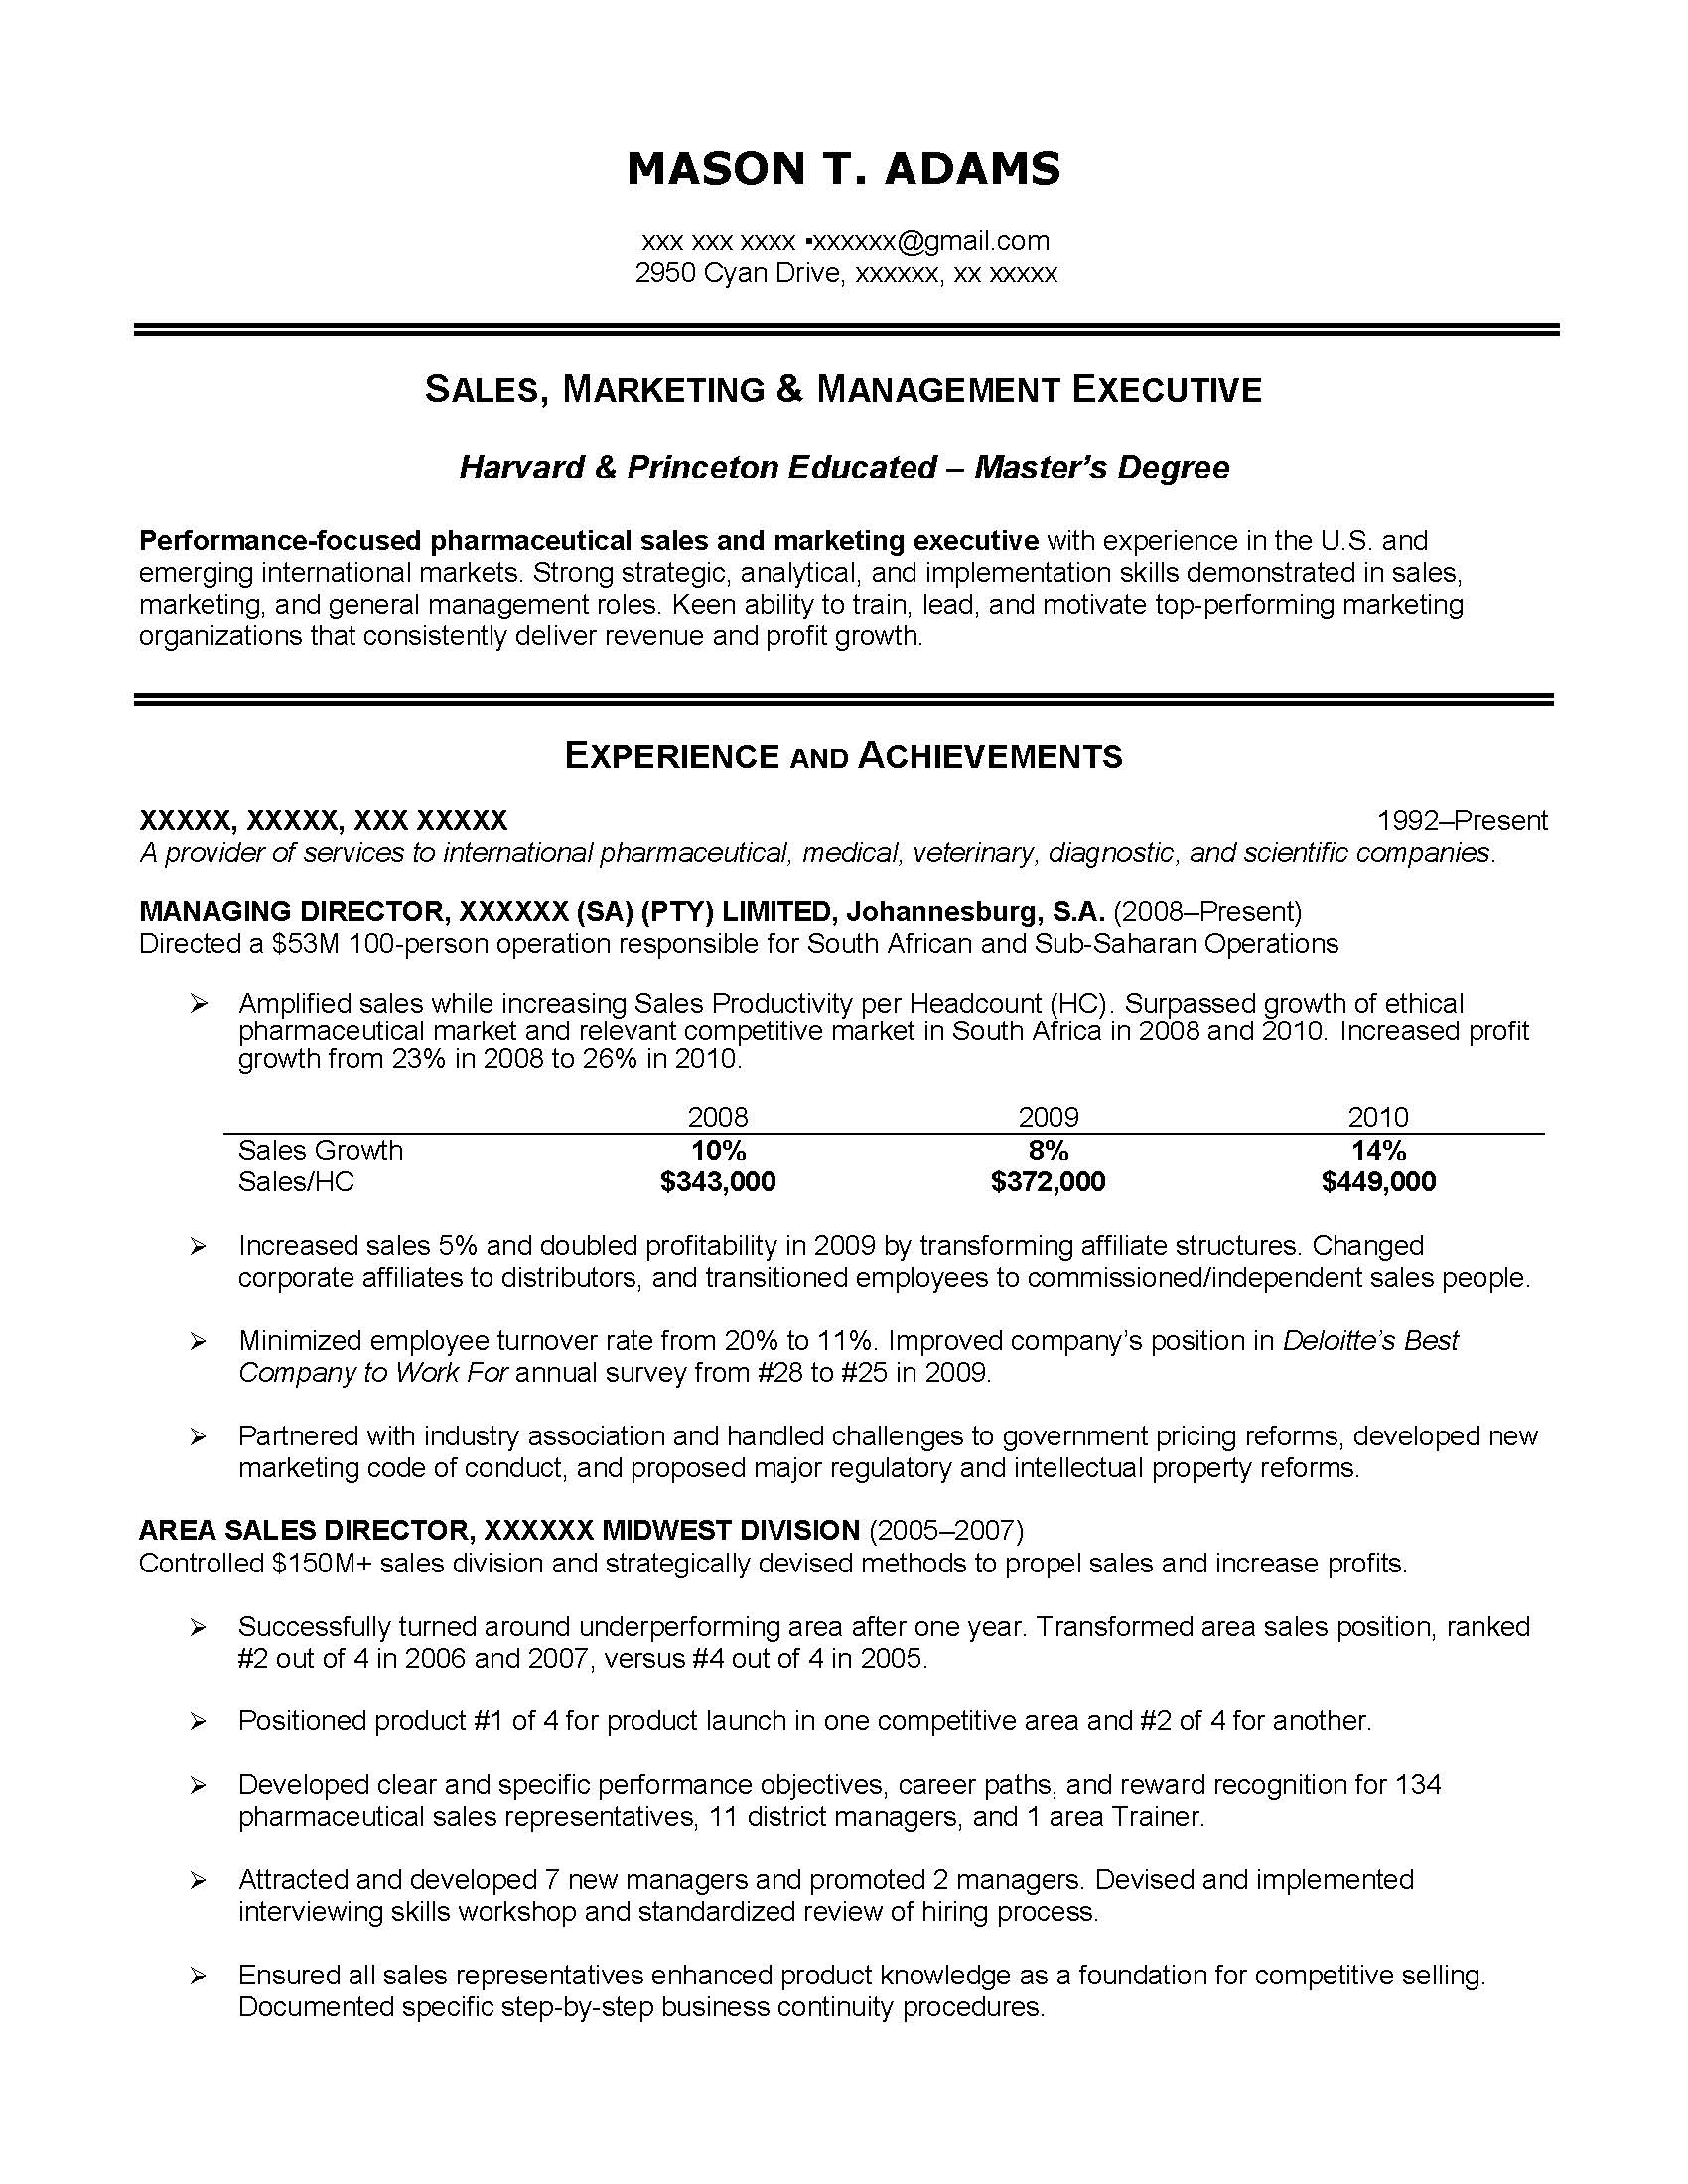 resume Words To Use In A Resume writer services agreement write my your content creation engine resume words to use for sales associate guide list of keywords in a